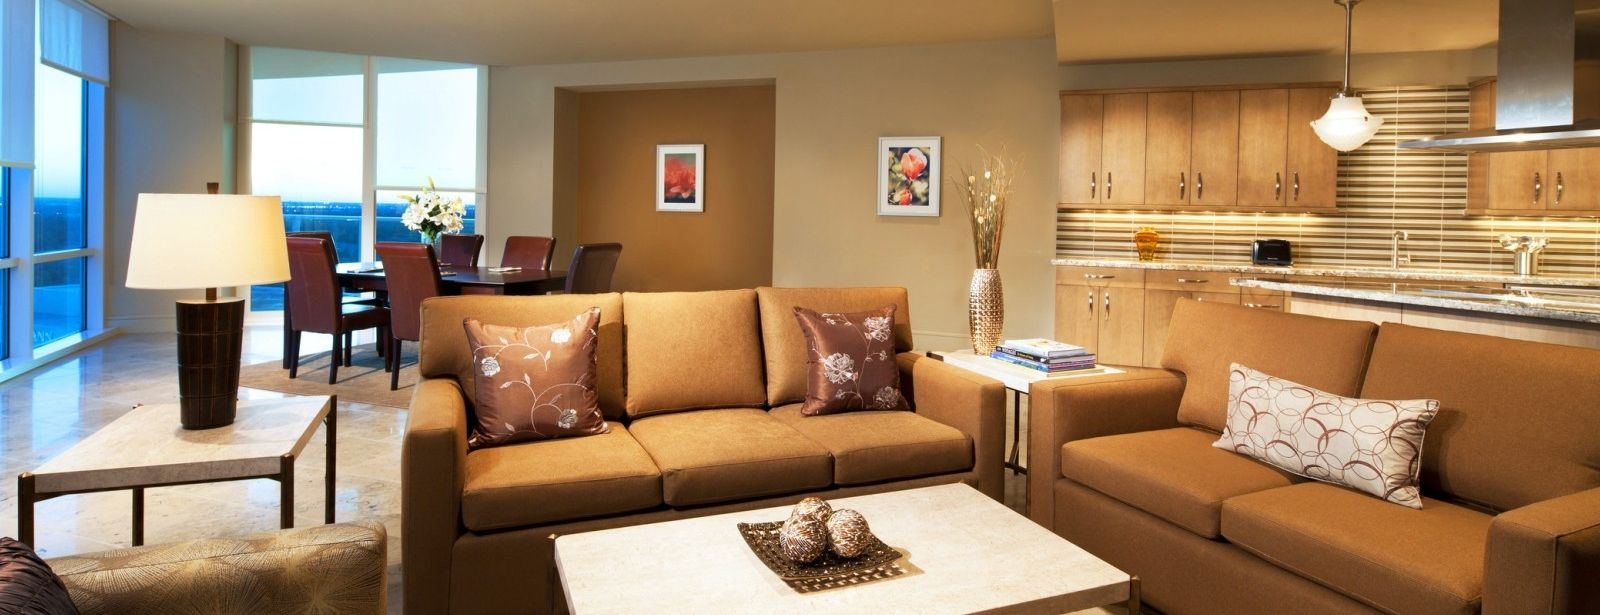 A Luxury Suite often used for extended stays at The Westin Houston, Memorial City